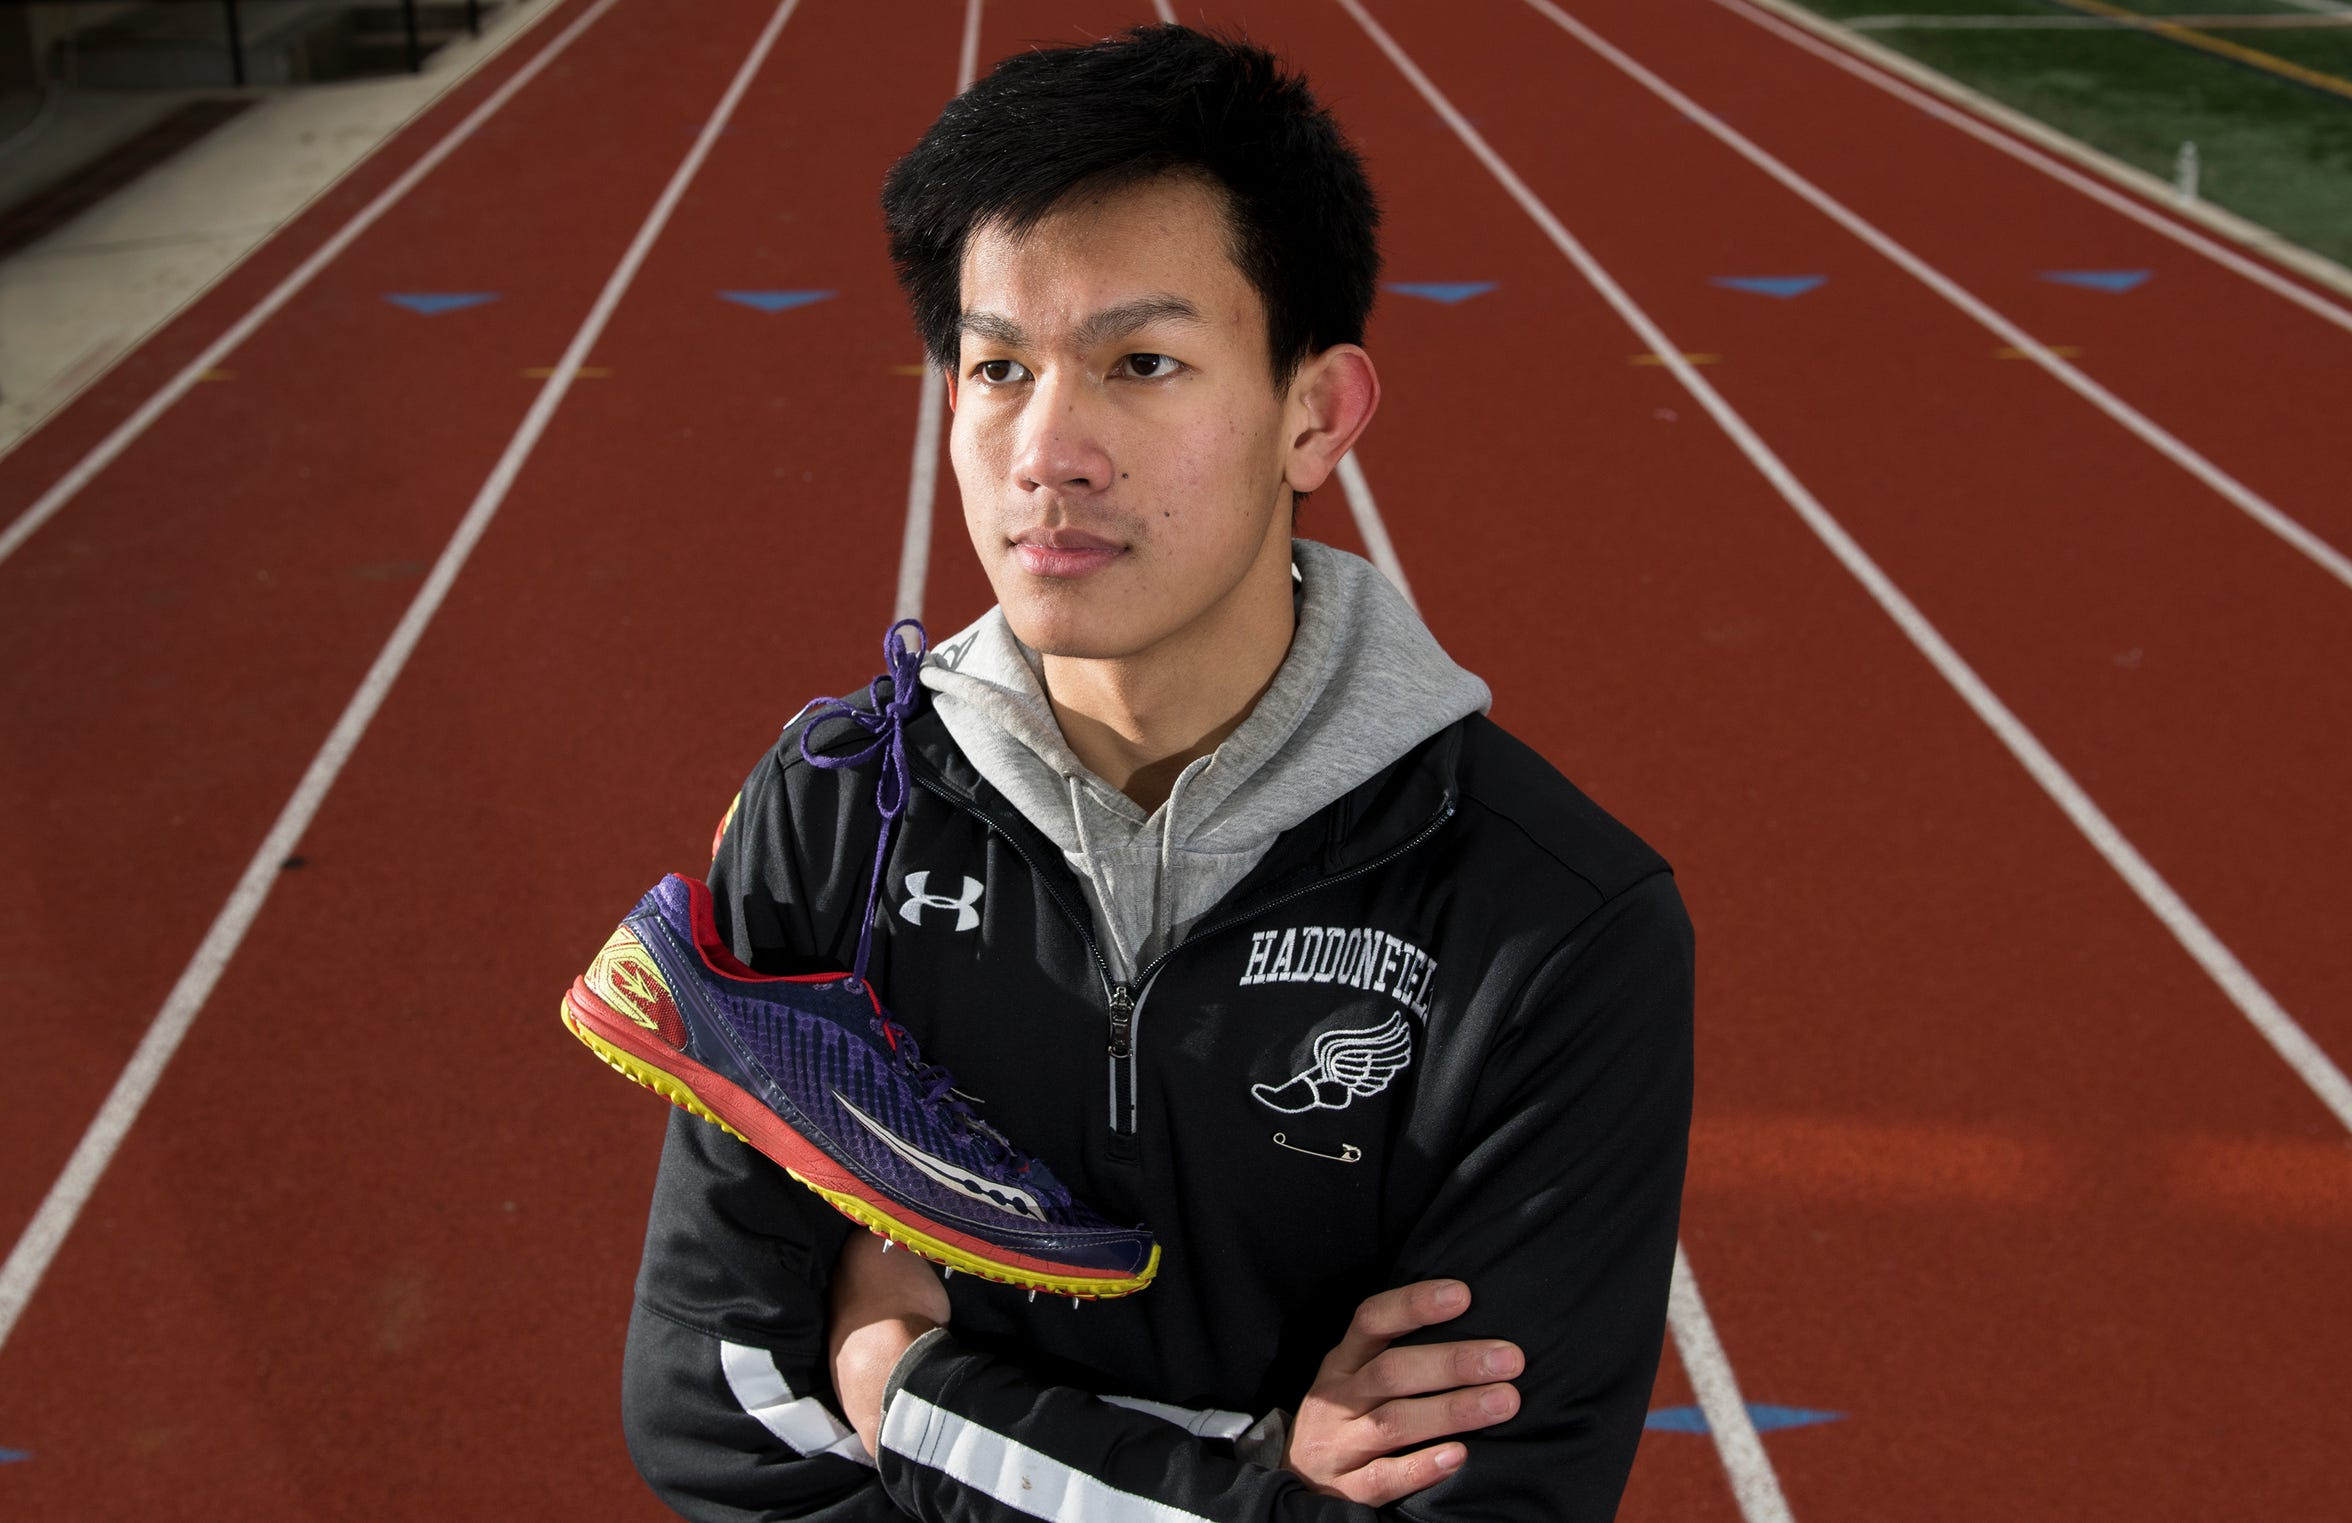 Haddonfield's Zachariah Murray was diagnosed with Non-Hodgkin's Lymphoma at age 5, but has recovered to become one of the fastest runners in the state.